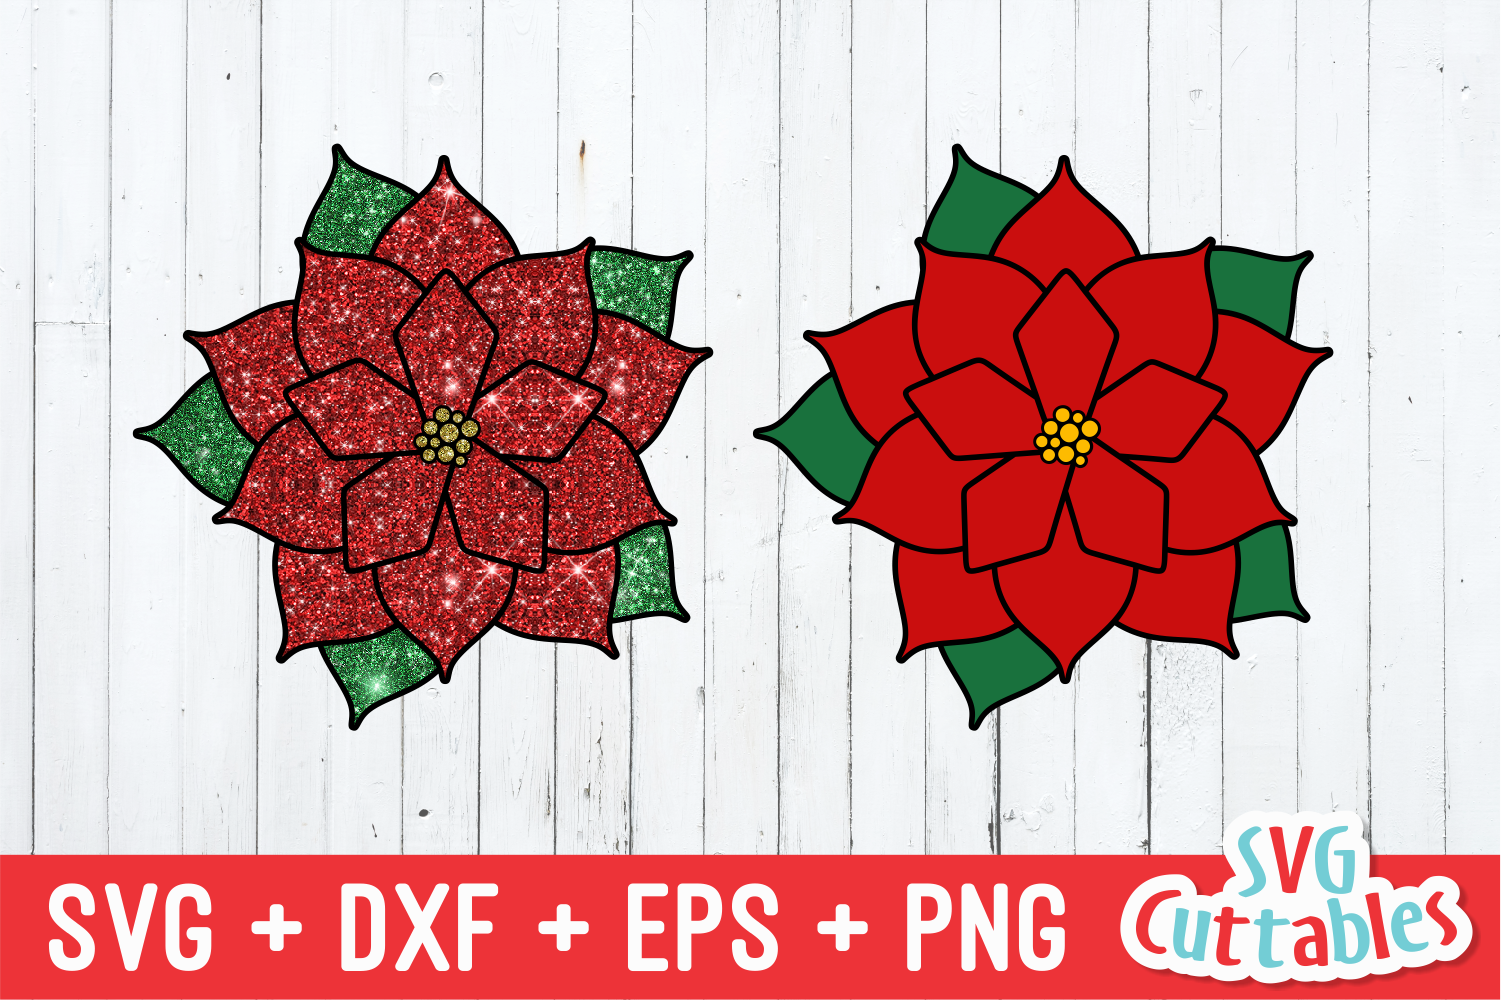 Merry Christmas Poinsettia | Christmas SVG Cut File example image 2